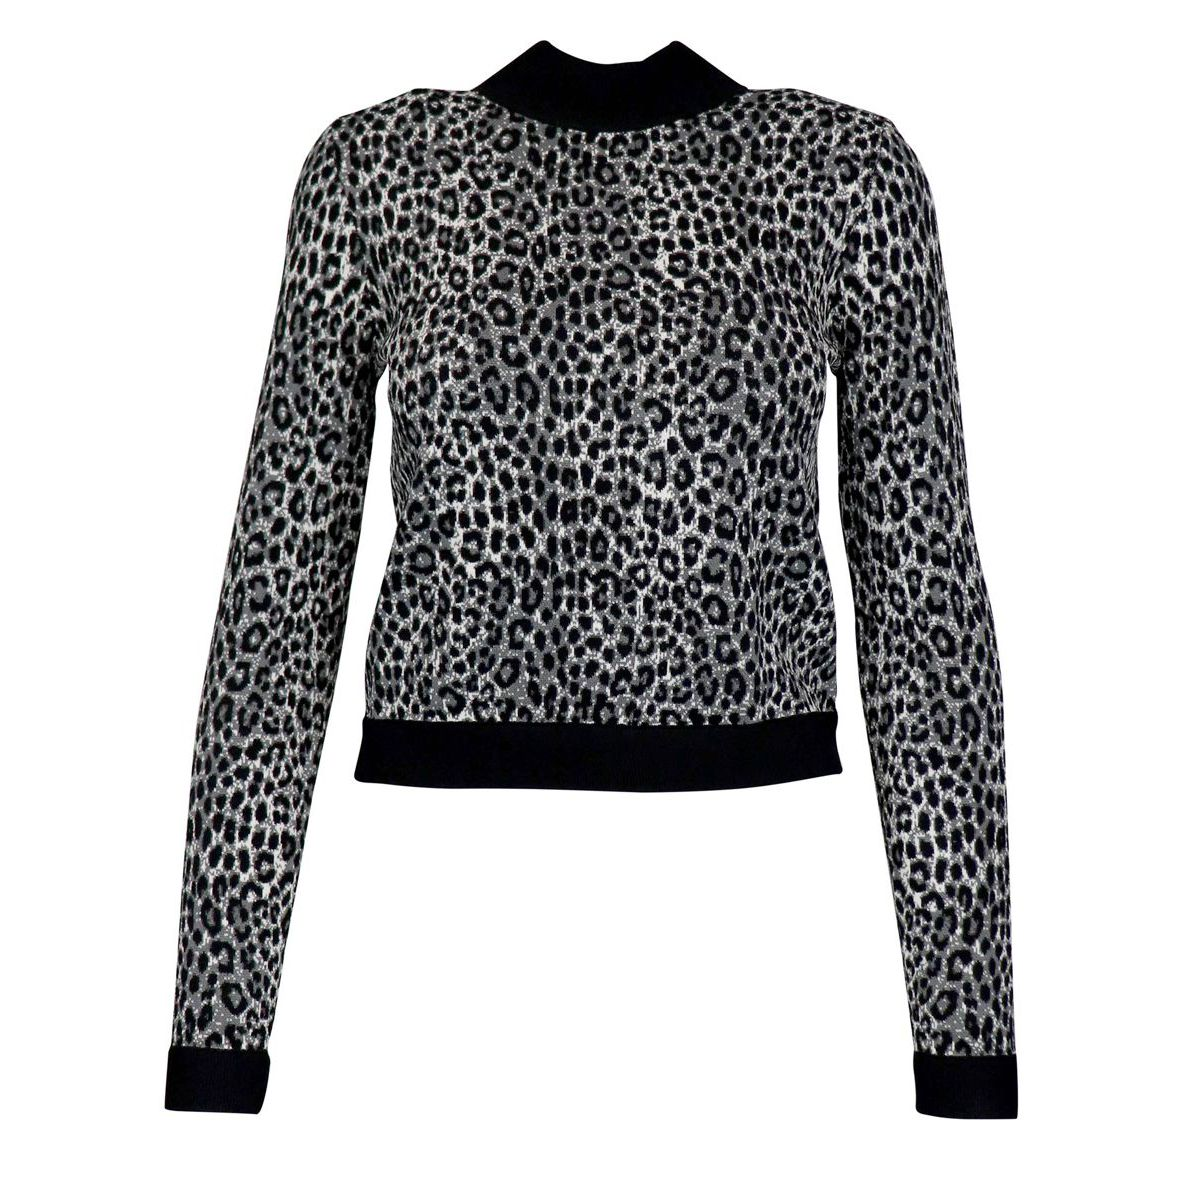 Turtleneck sweater in viscose blend with animal print Grey Michael Kors